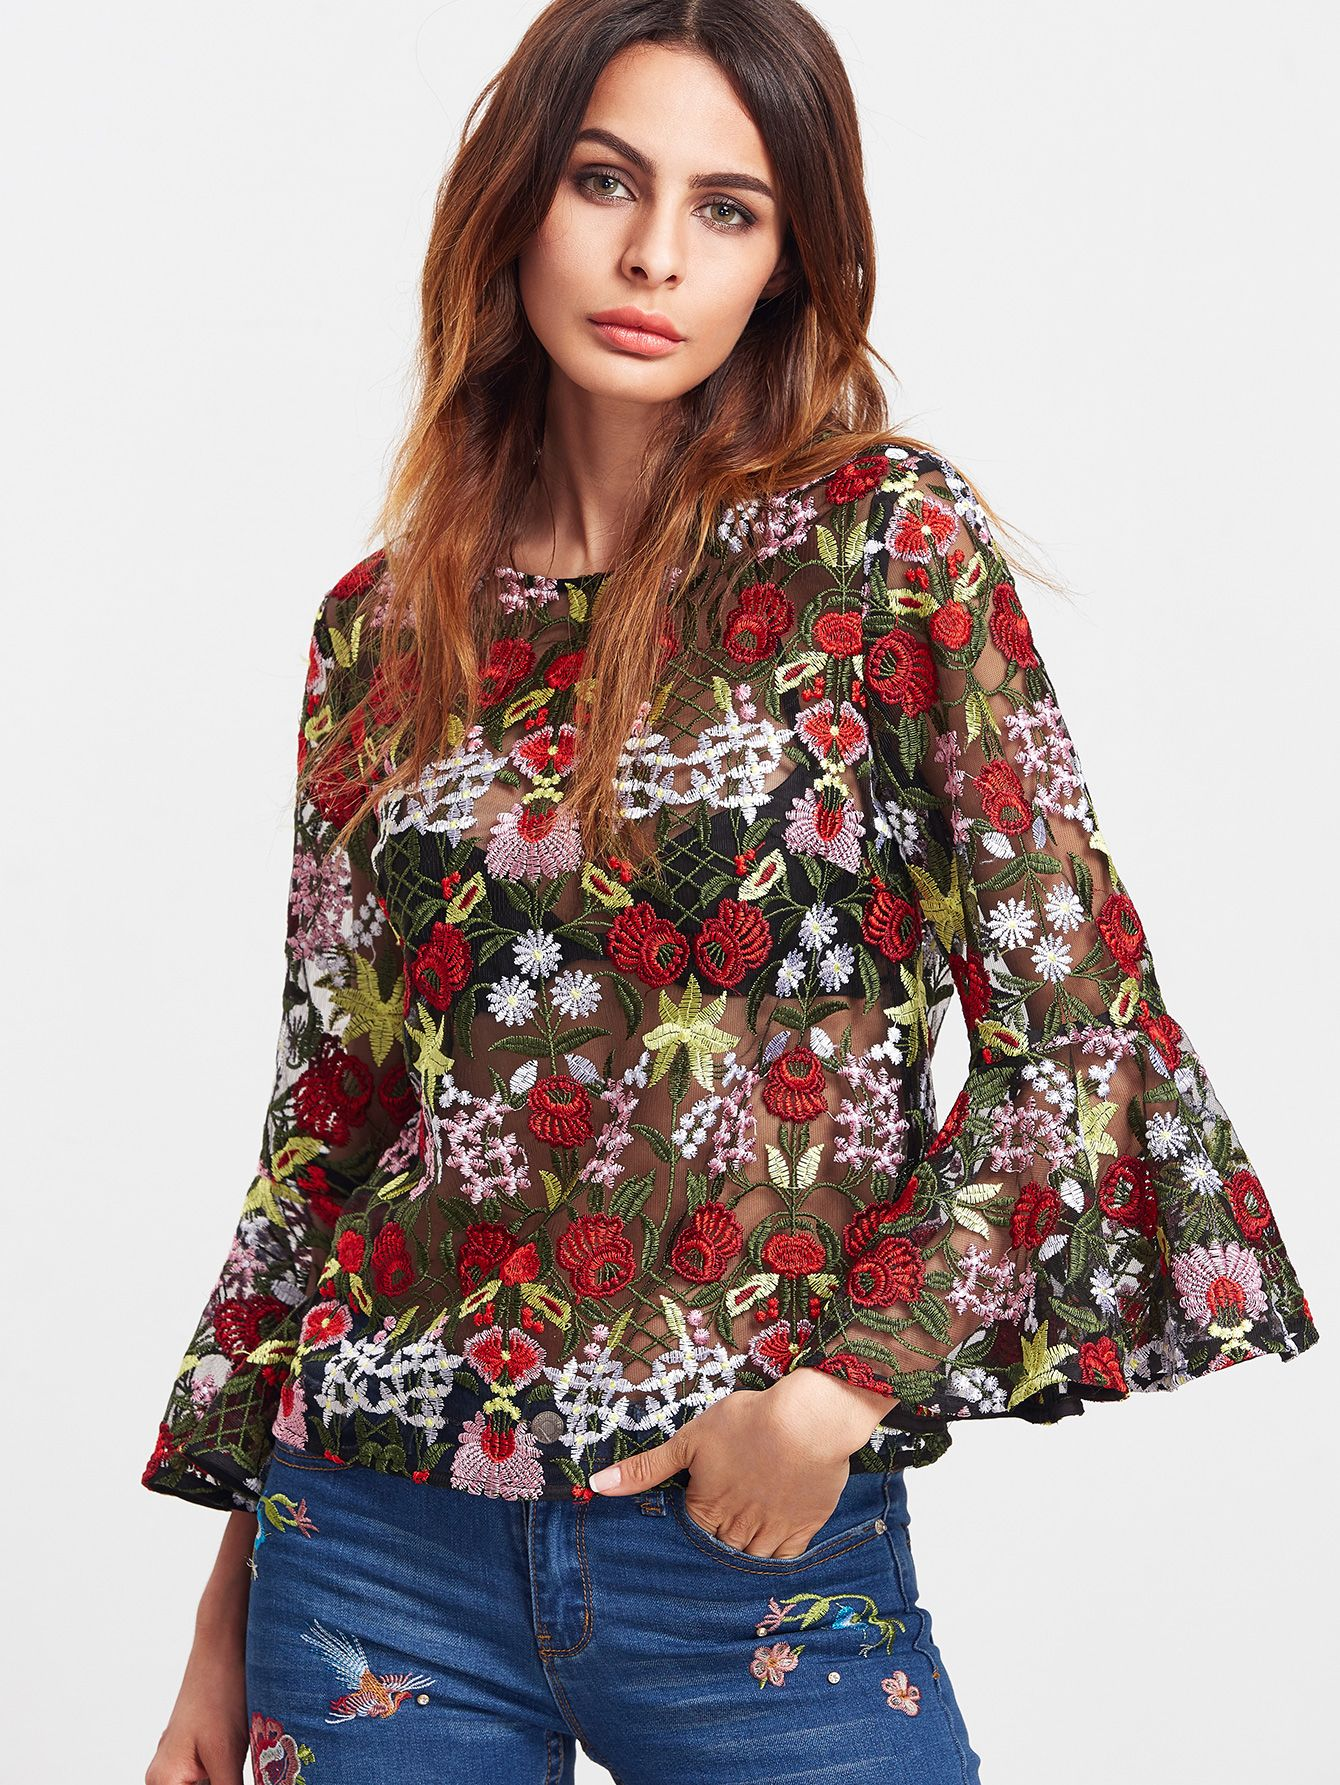 b9e8d49b25f Shop Multicolor Bell Sleeve Flower Embroidered Mesh Top online. SheIn  offers Multicolor Bell Sleeve Flower Embroidered Mesh Top & more to fit  your ...